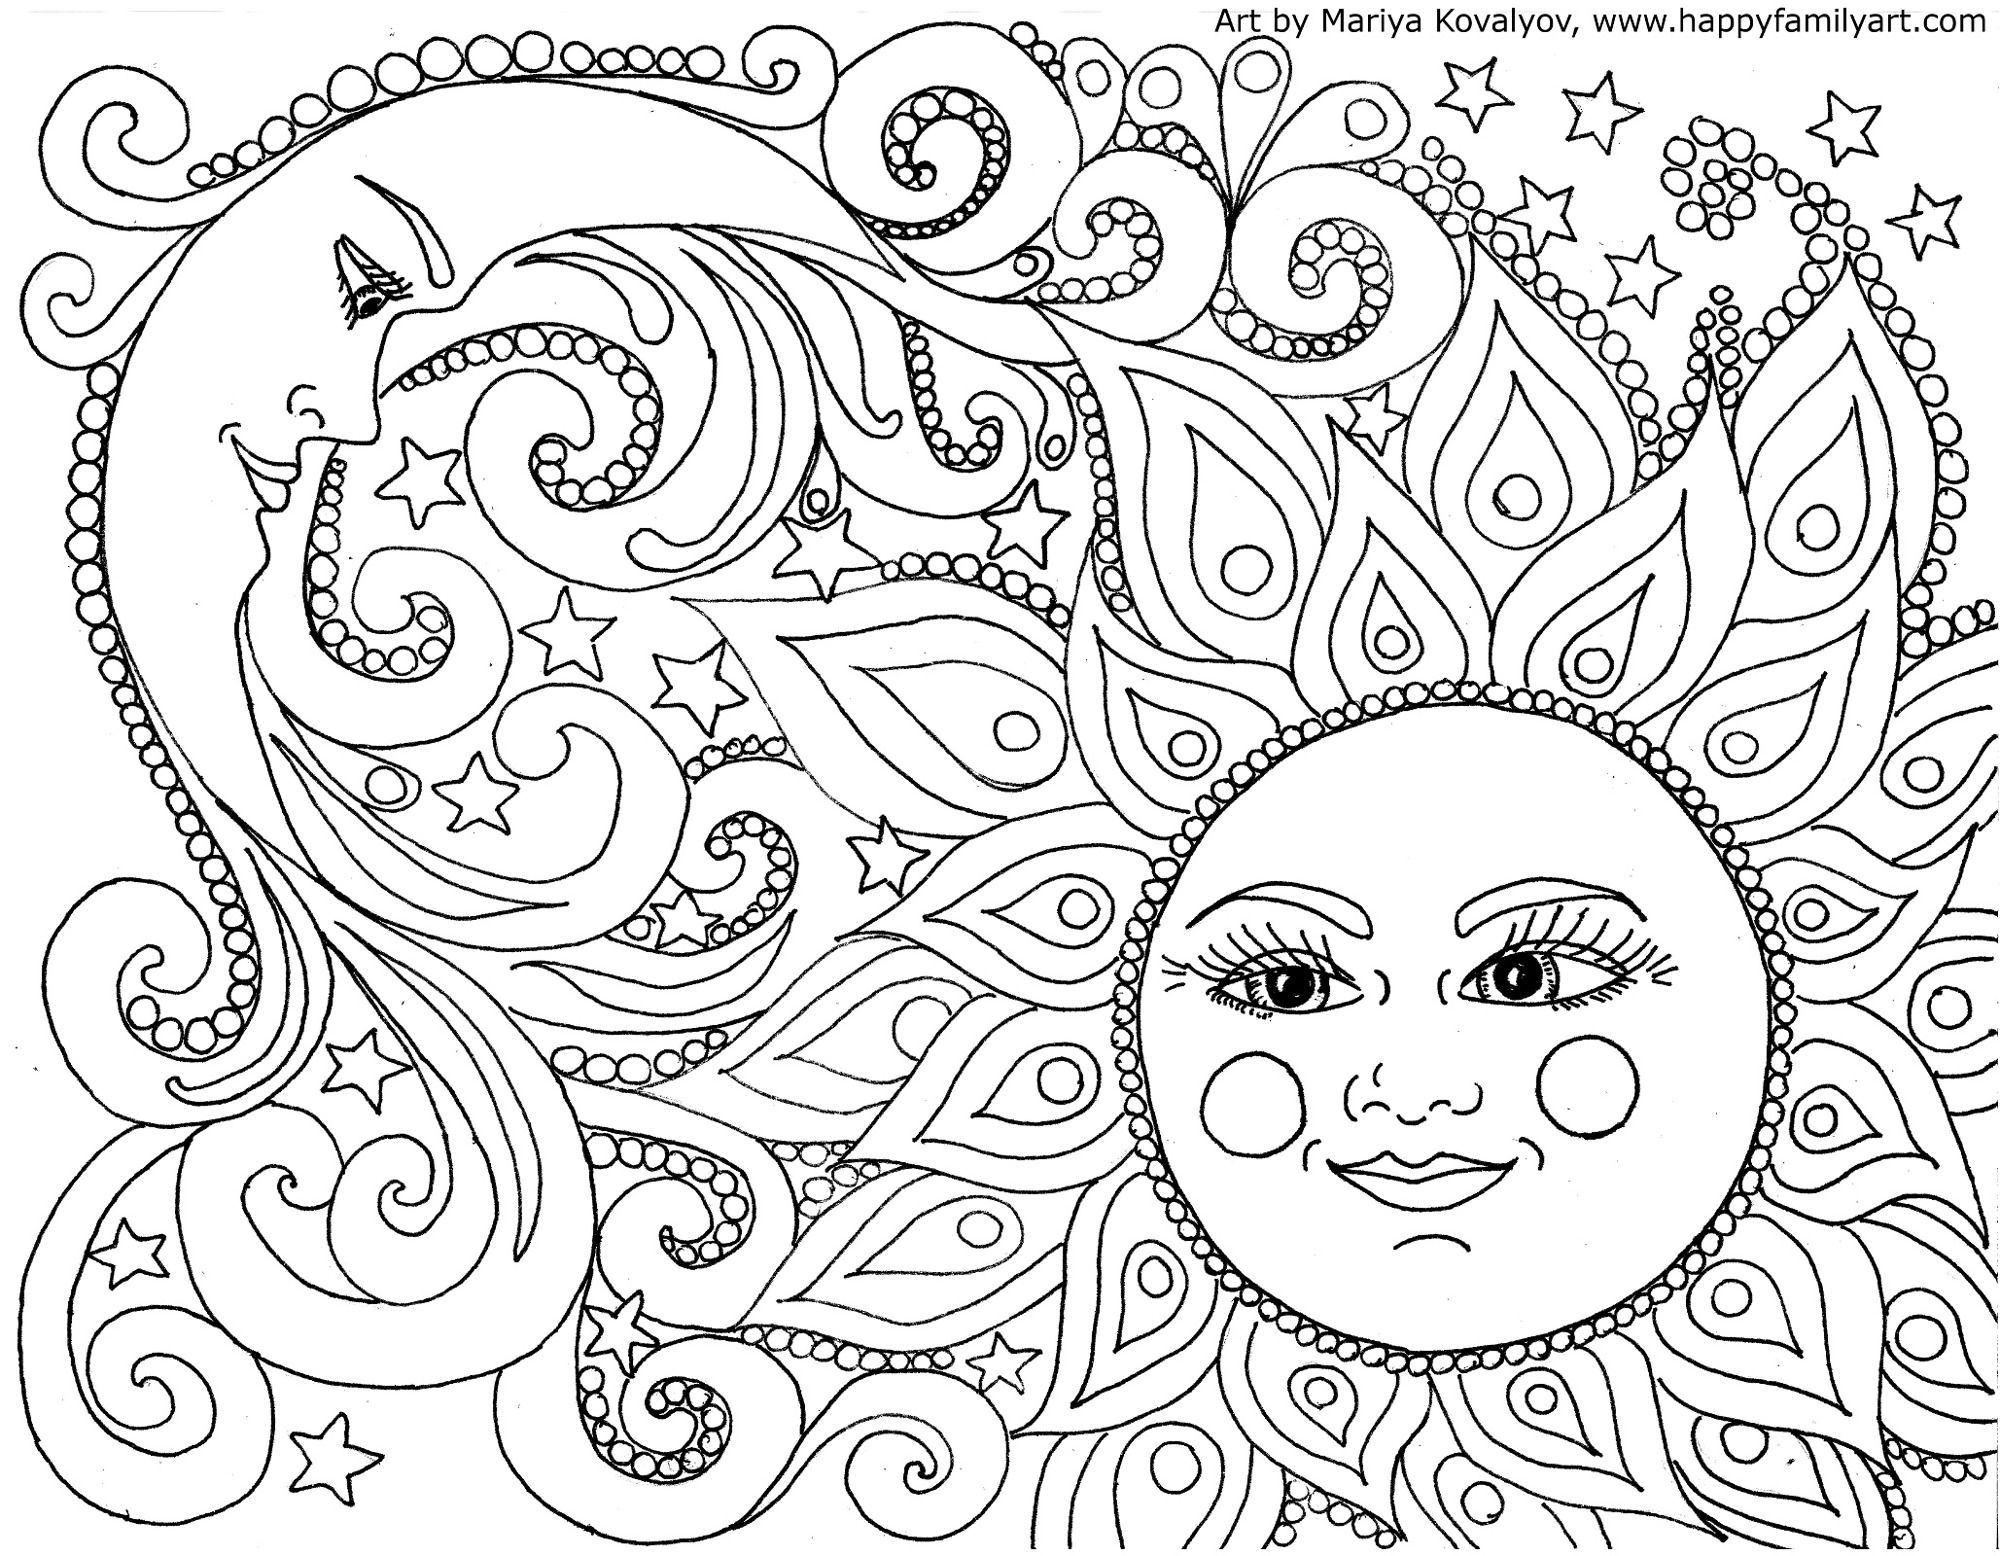 2000x1556 I Made Many Great Fun And Original Coloring Pages Color Your Free